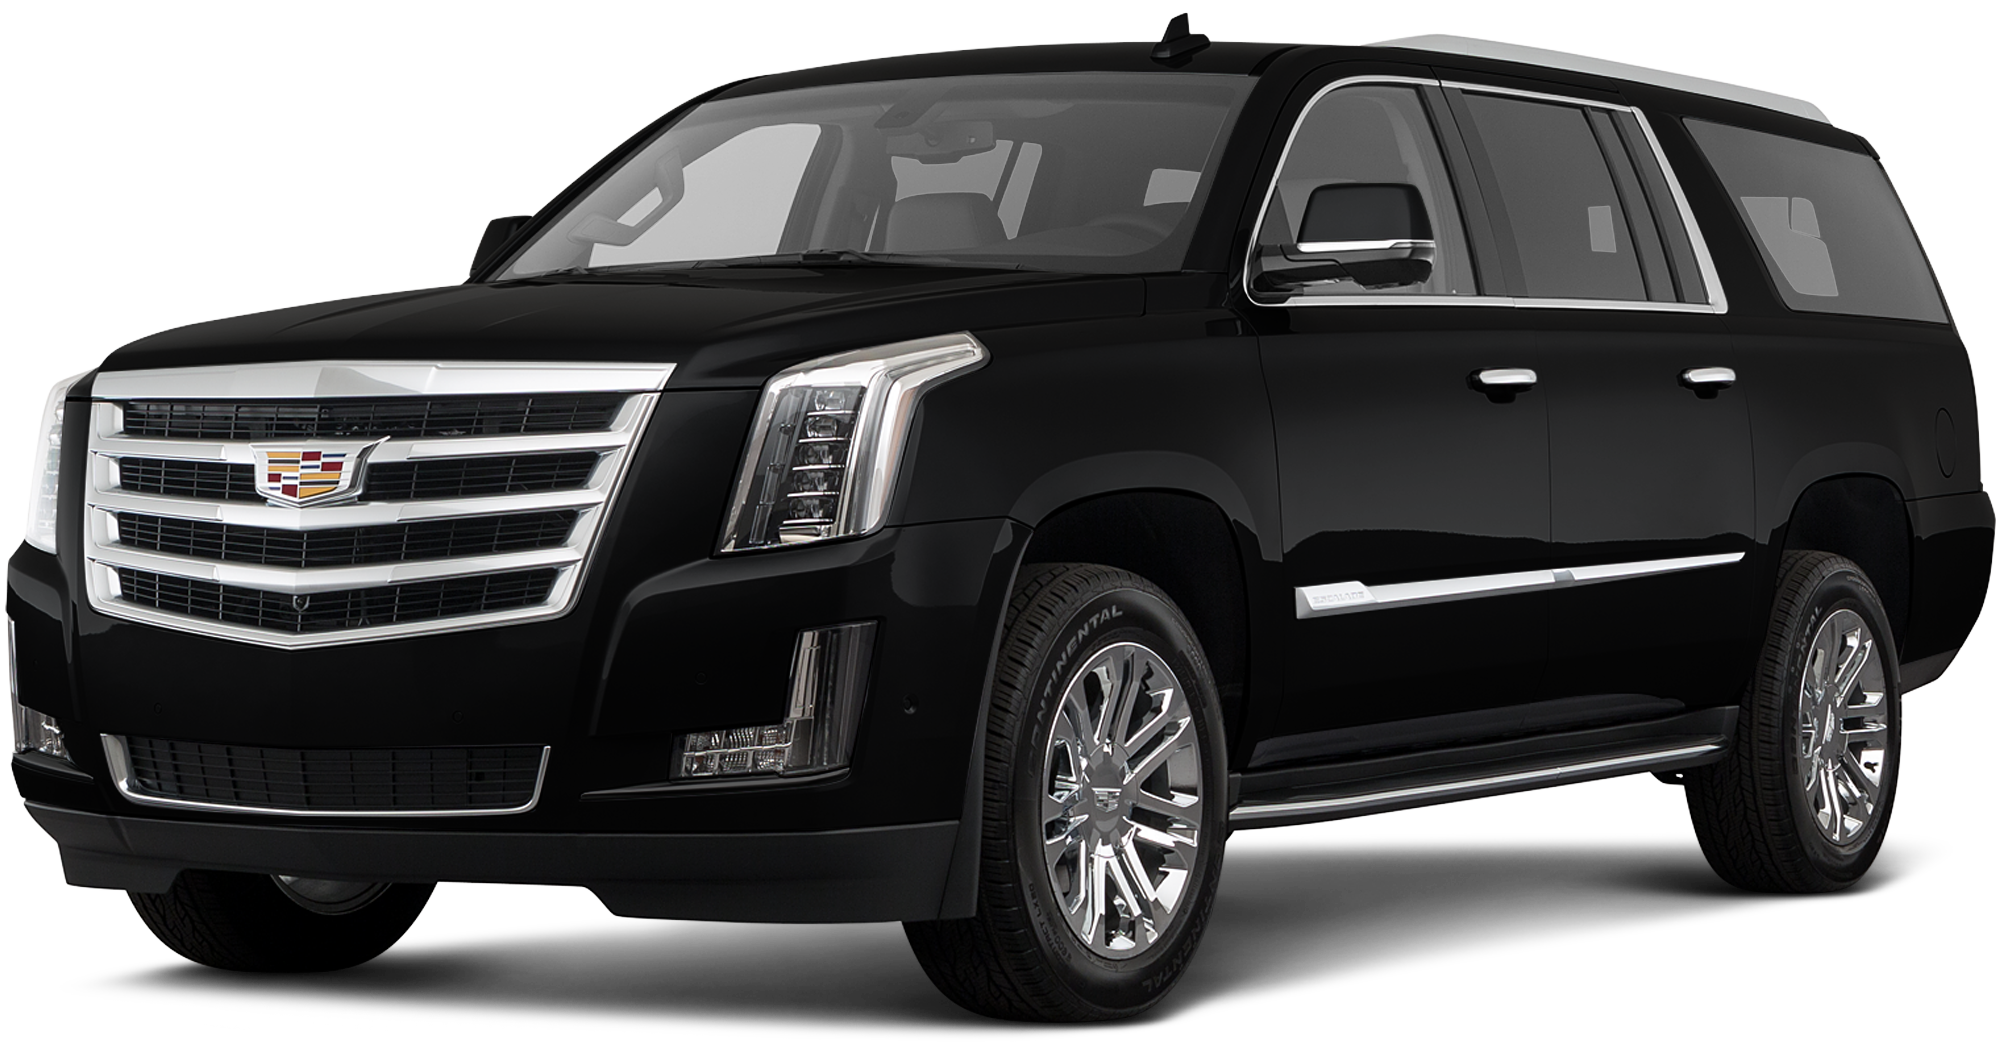 2020 CADILLAC Escalade ESV Incentives, Specials & Offers